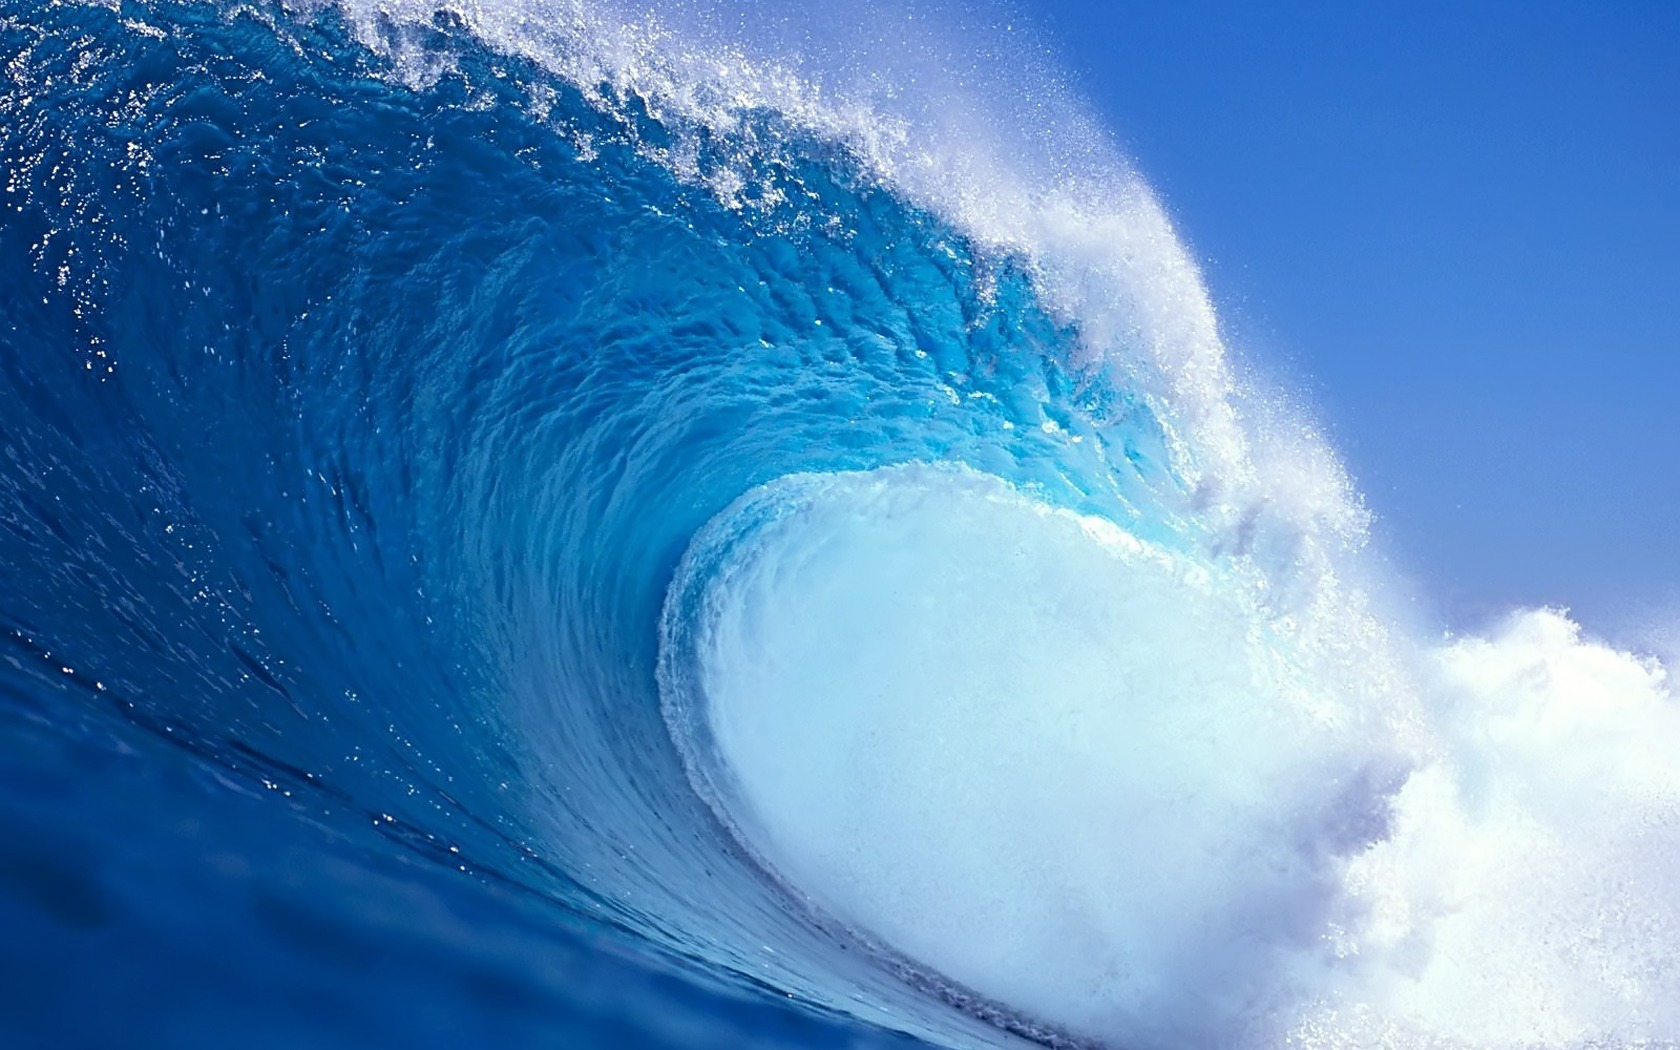 Blue Wave HD Wallpaper